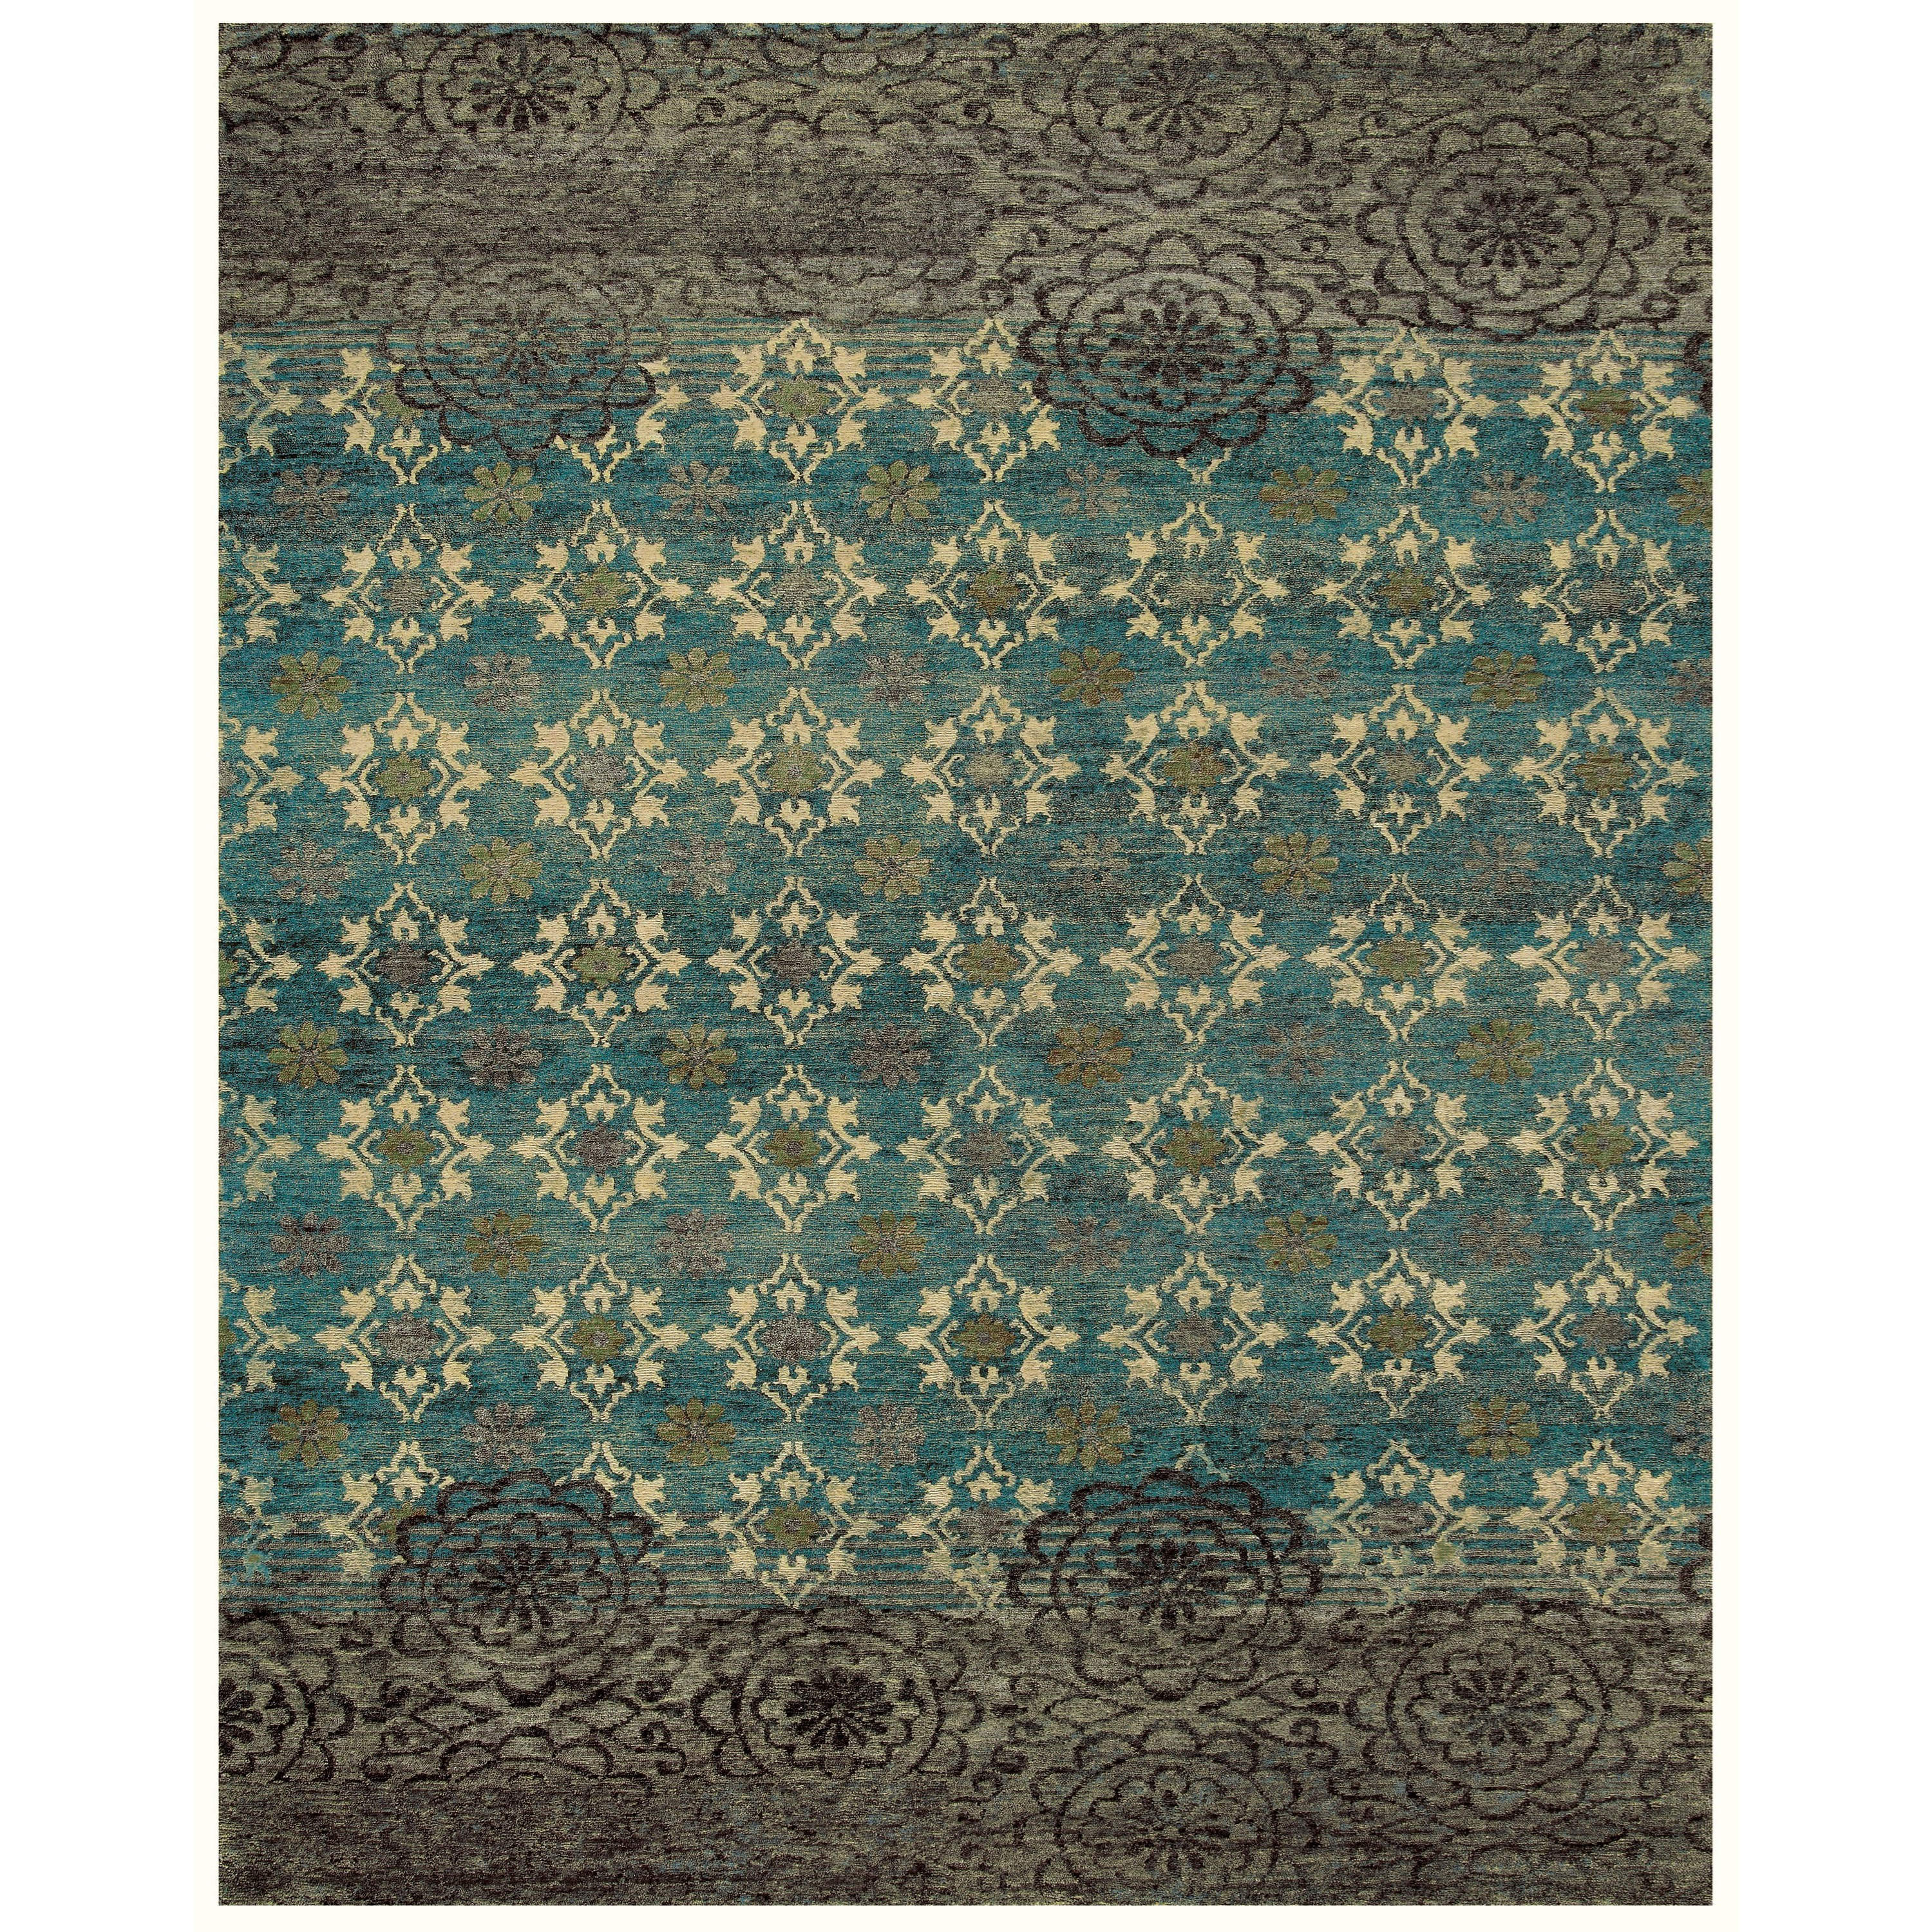 Qing Silver Sage 4' x 6' Area Rug by Feizy Rugs at Sprintz Furniture